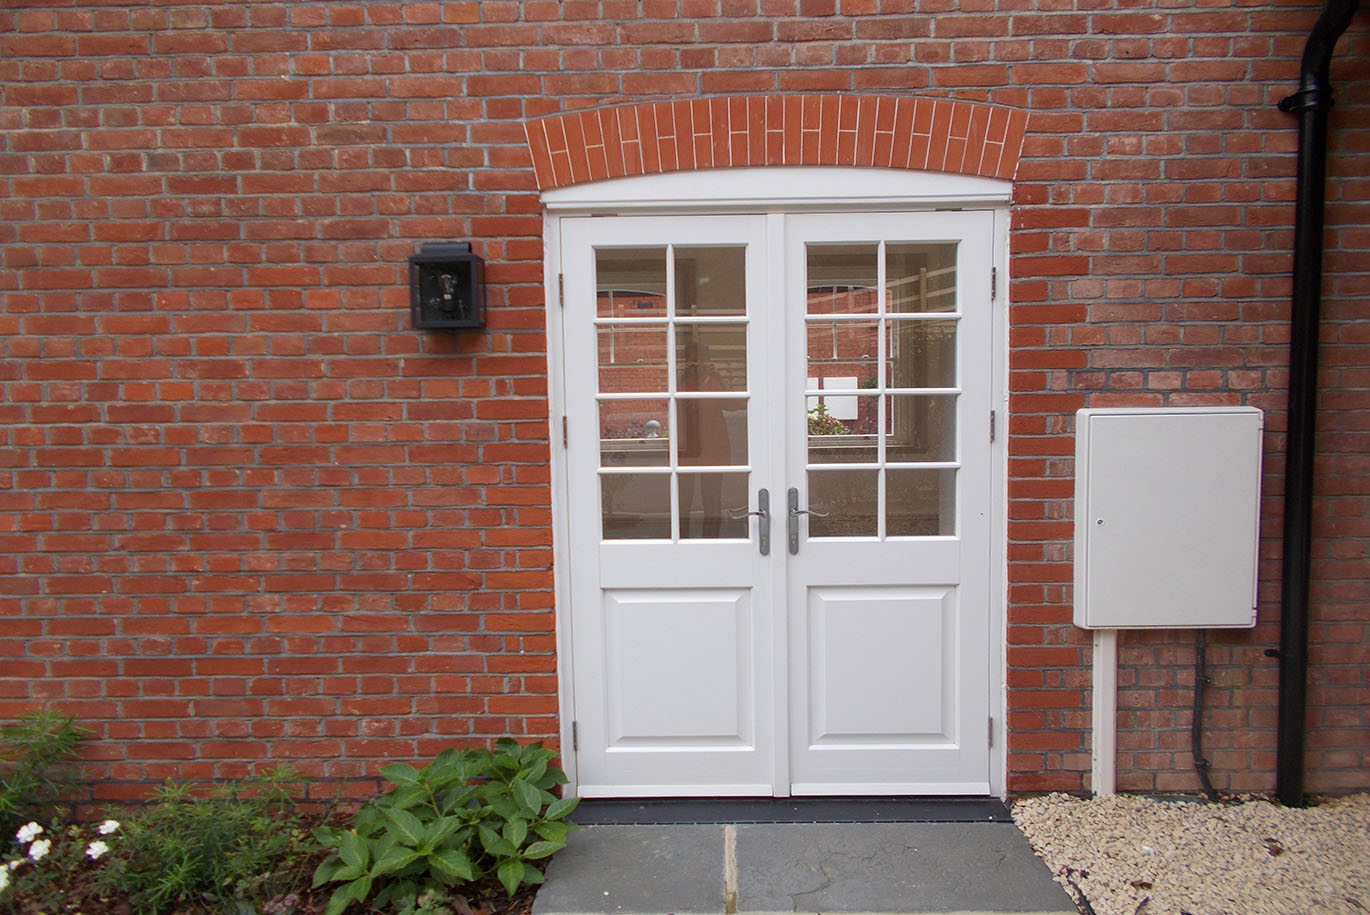 Timber Double Glazed White Entry Door